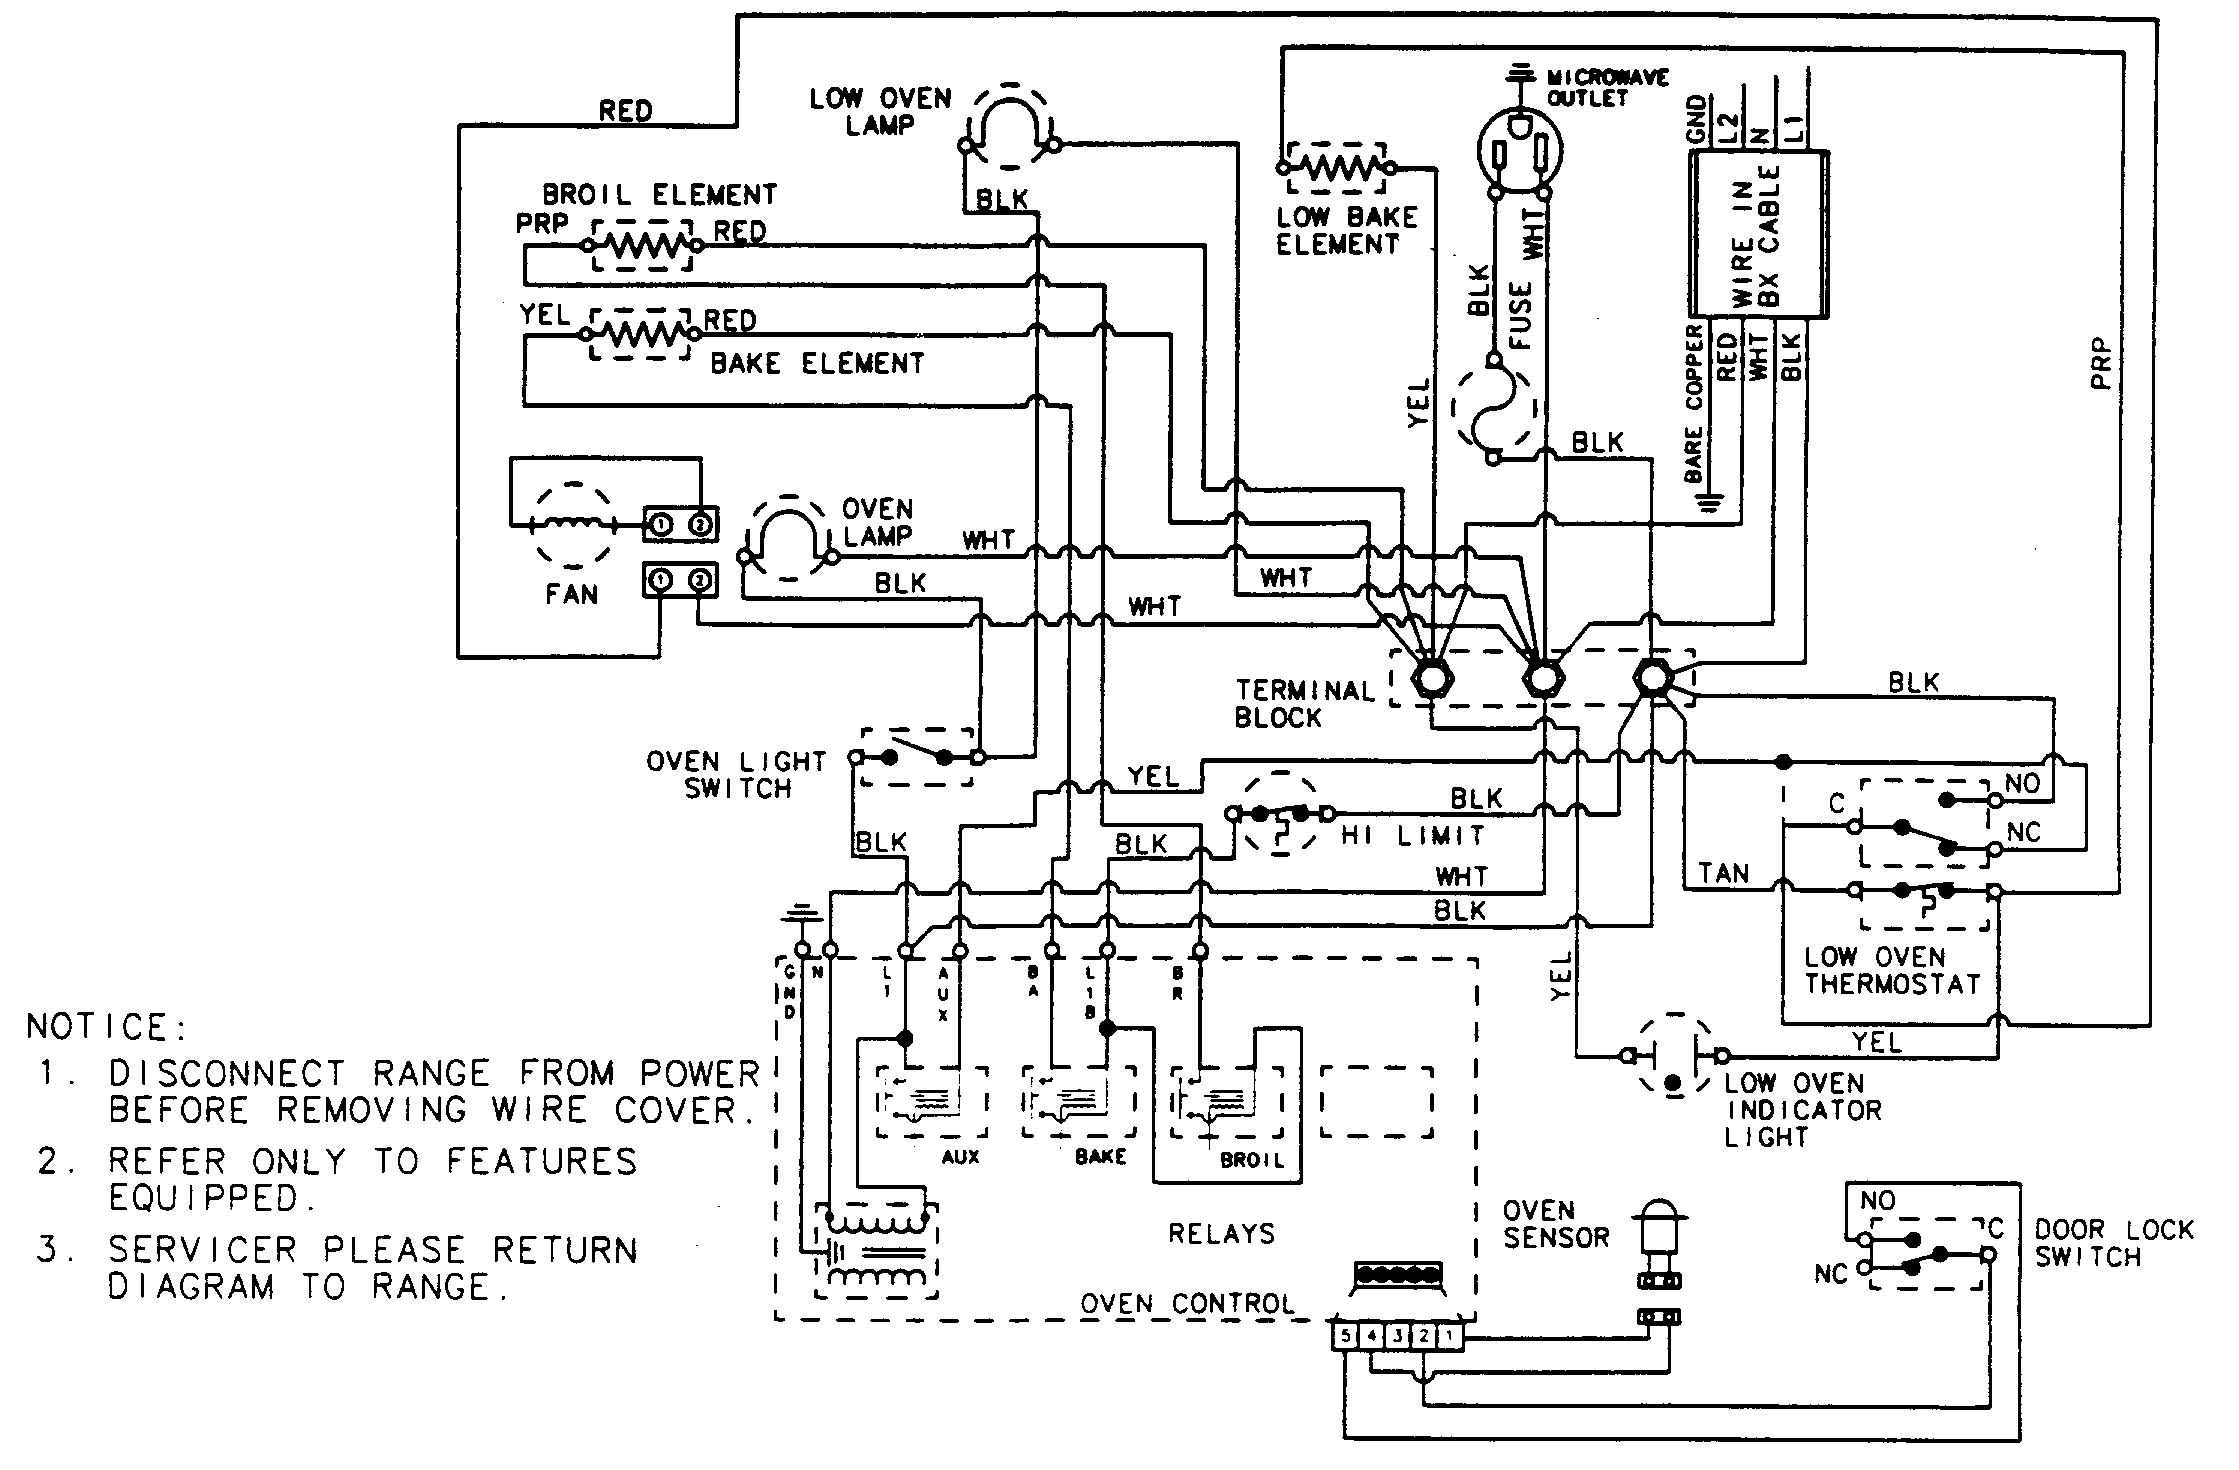 Electric Oven Thermostat Wiring Diagram ~ Magic chef vuv electric oven timer stove clocks and